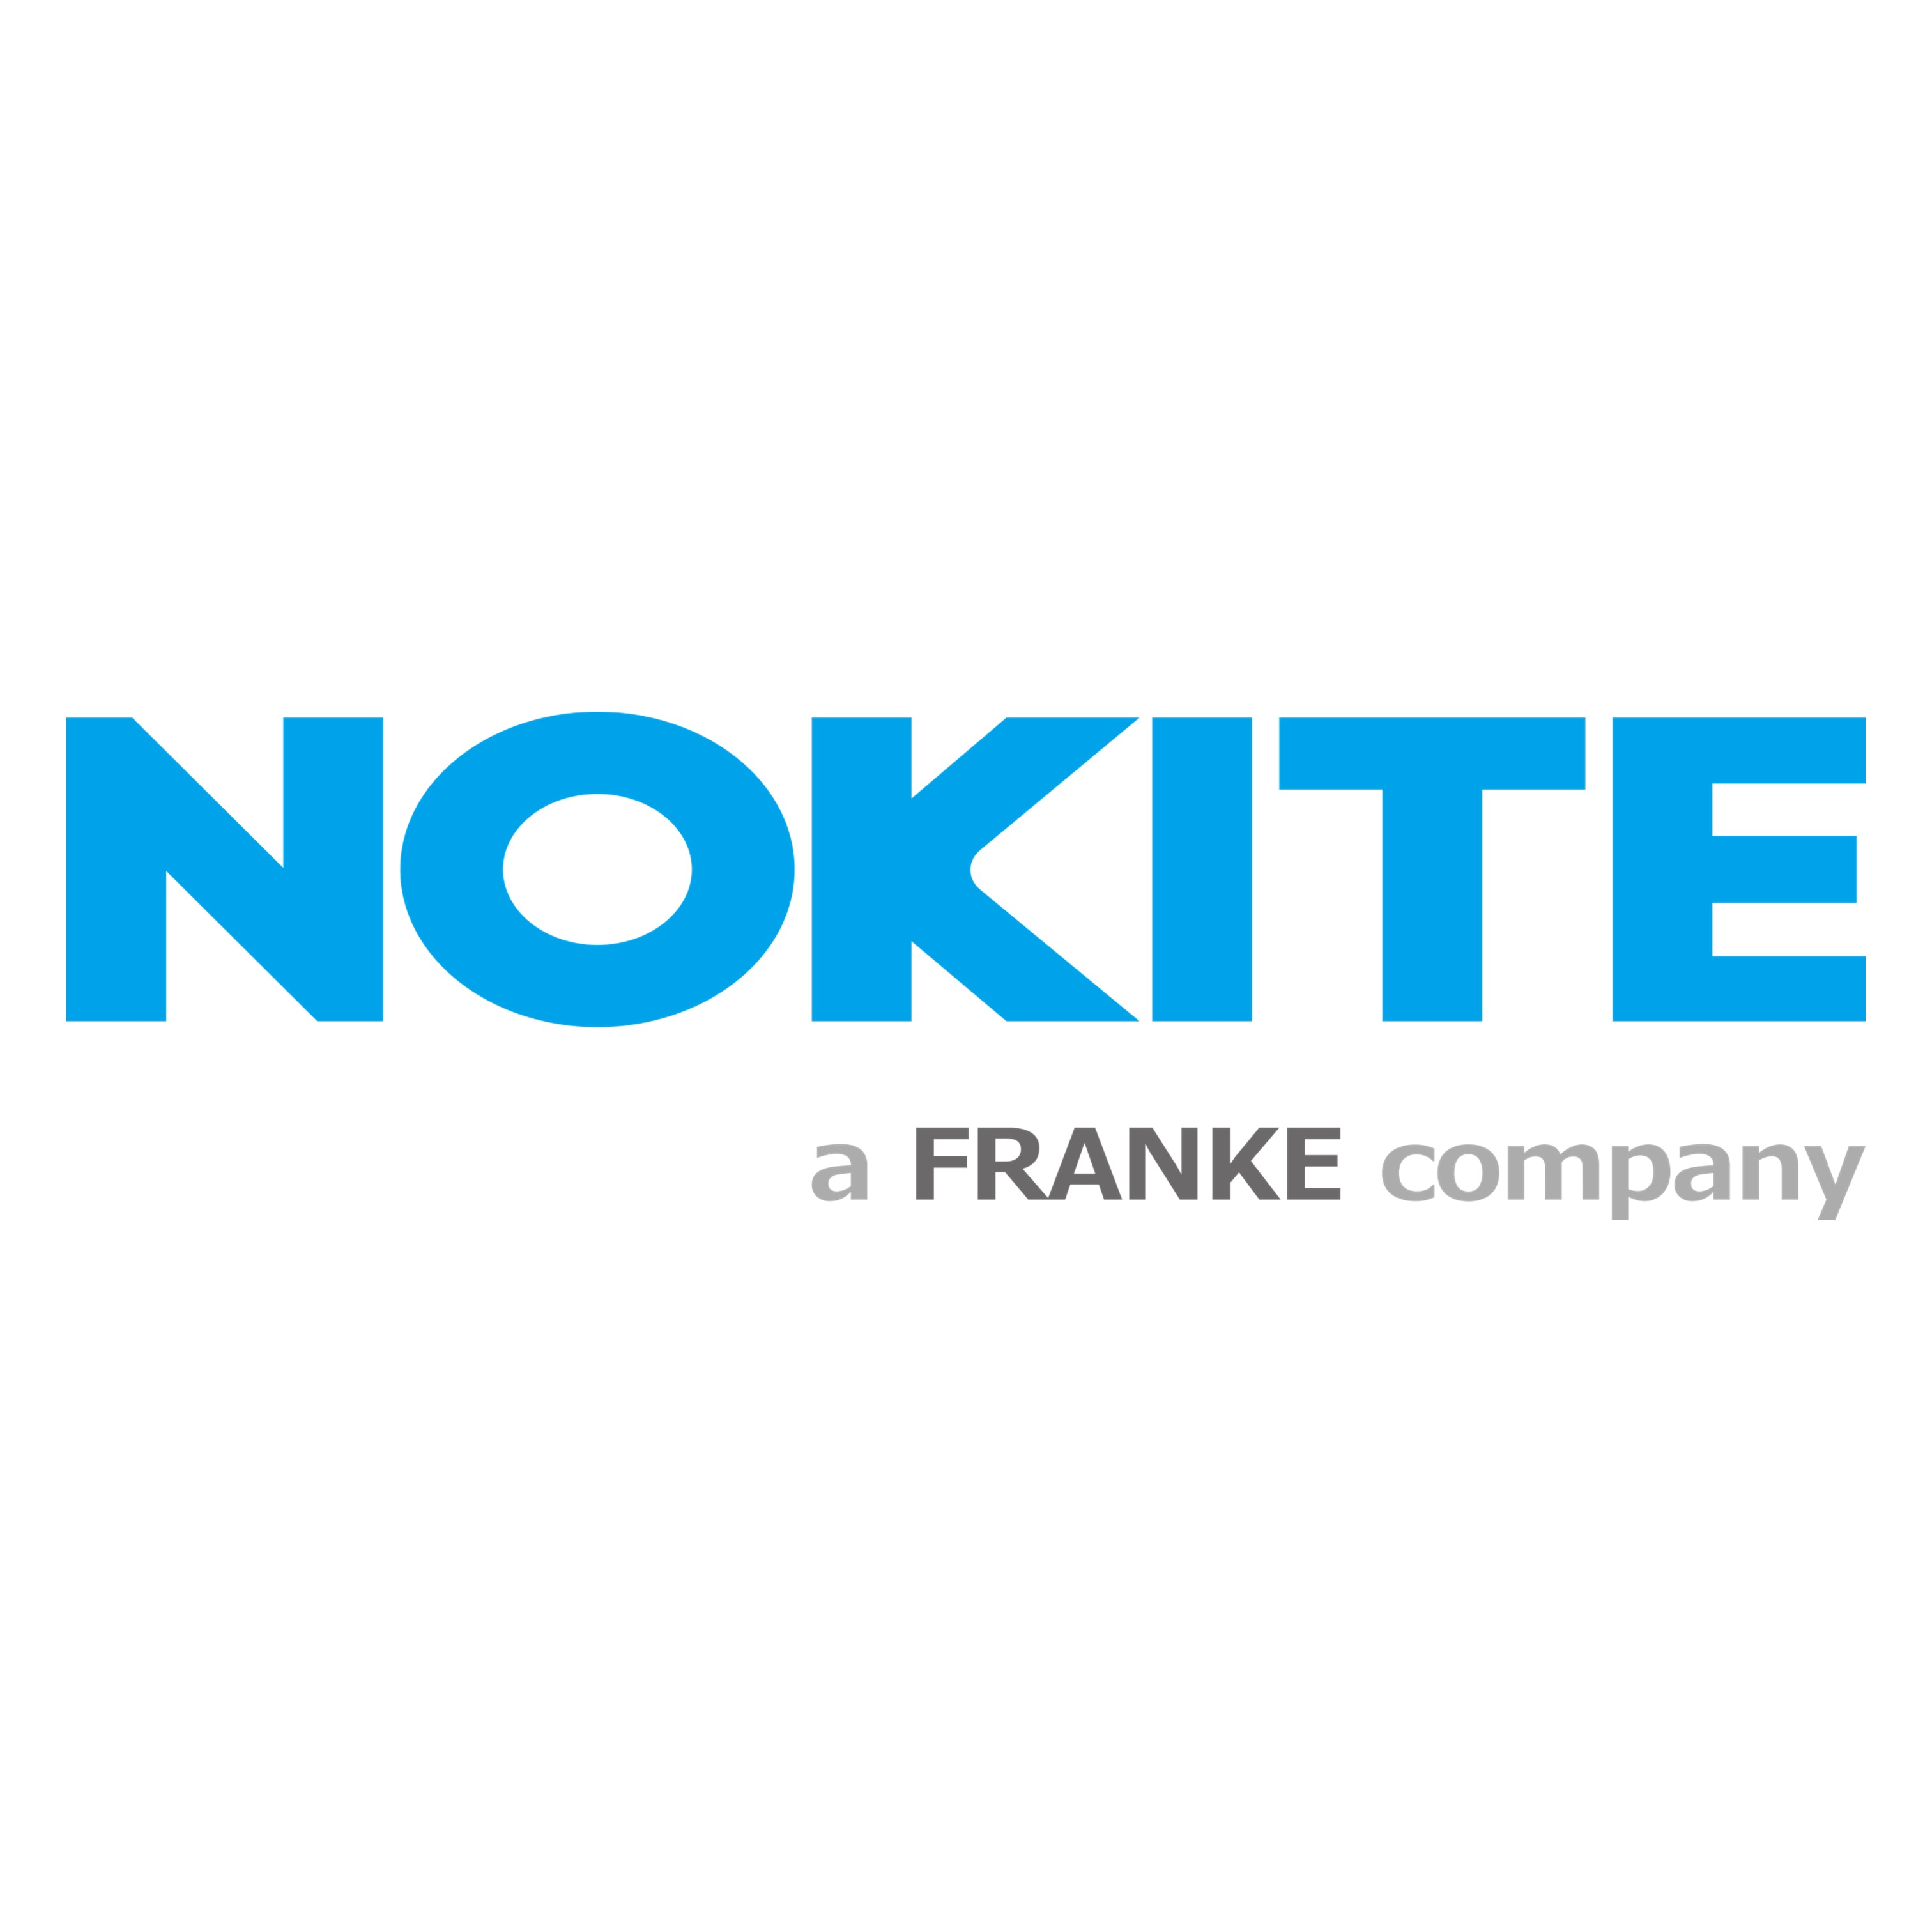 Nokite Eco Smart Water Heating Systems (Guangdong) Co., Ltd